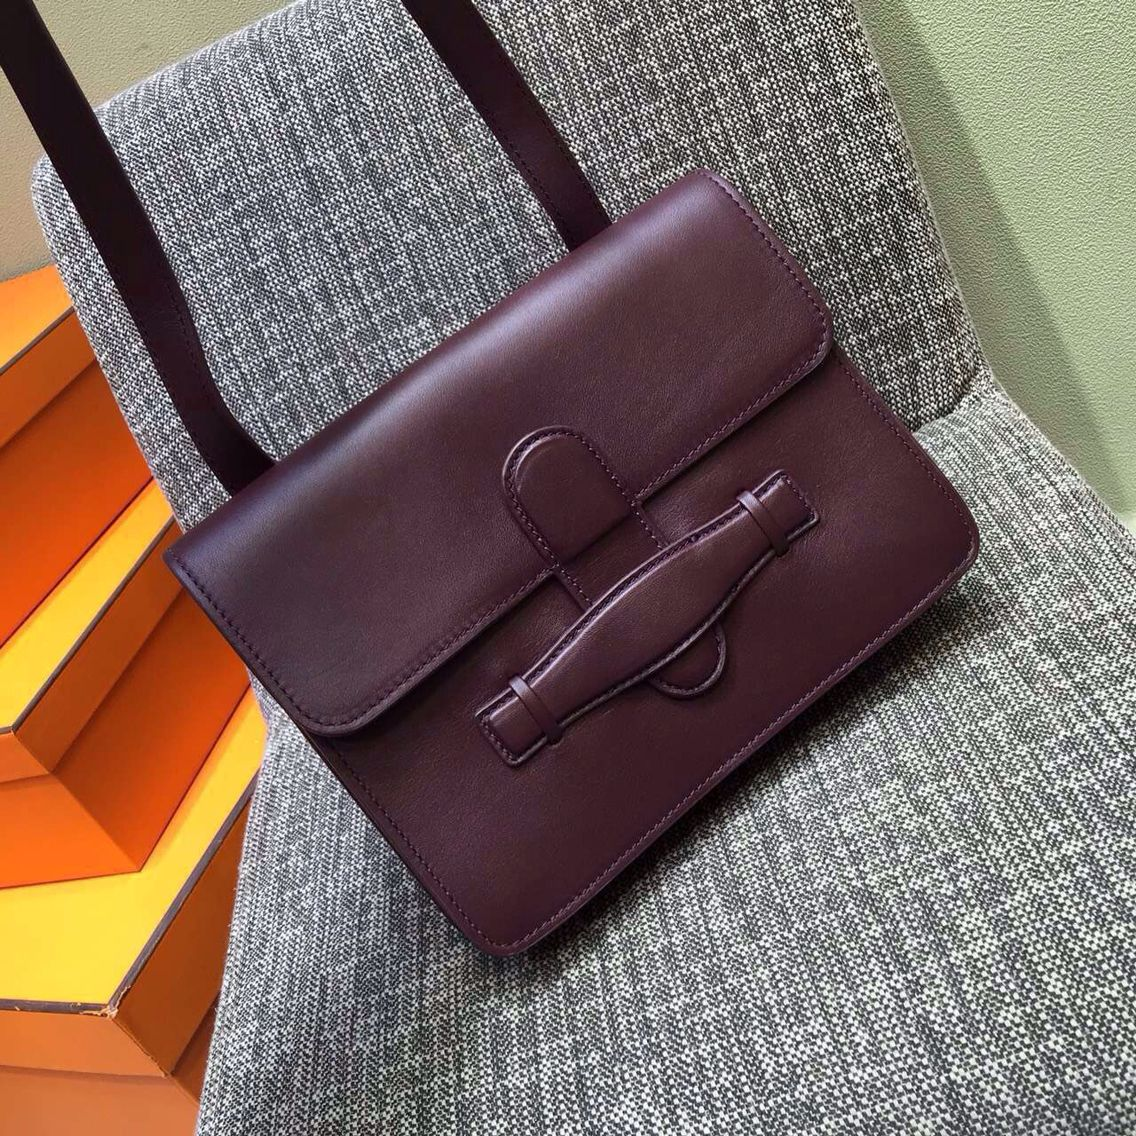 Celine Symmetrical bag collection  5bf859b688a9f